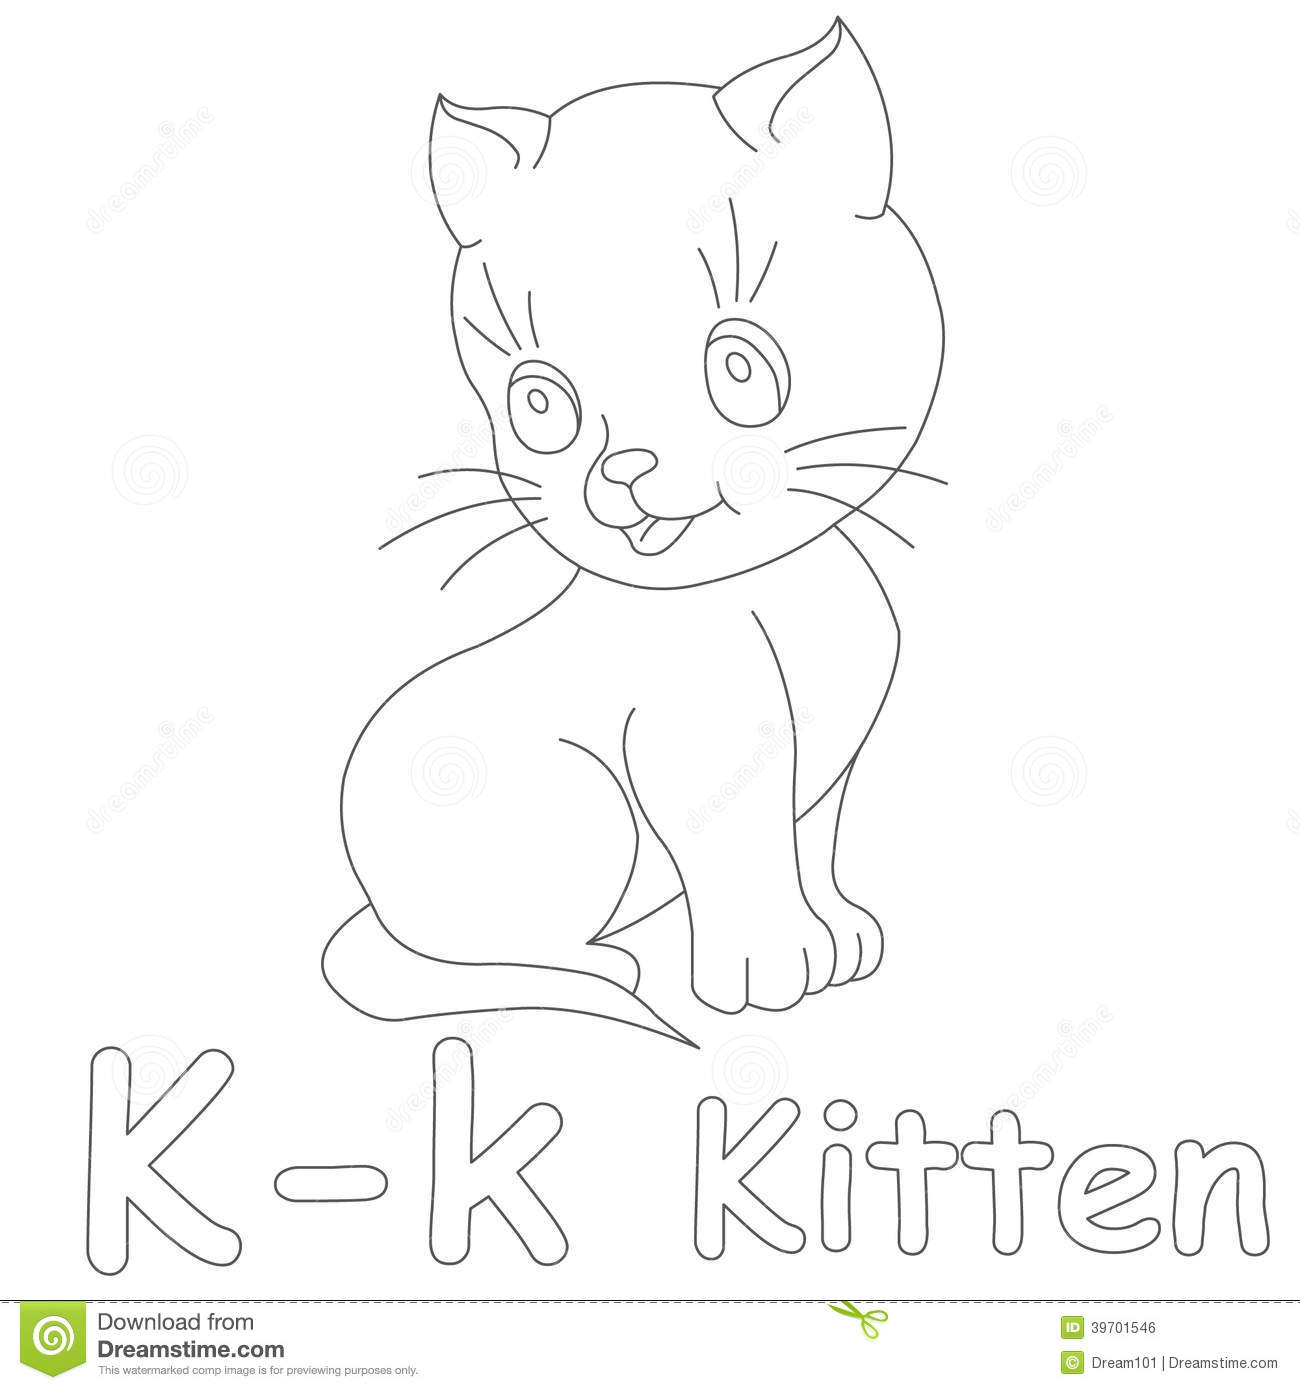 k for kitten coloring page stock illustration image 39701546